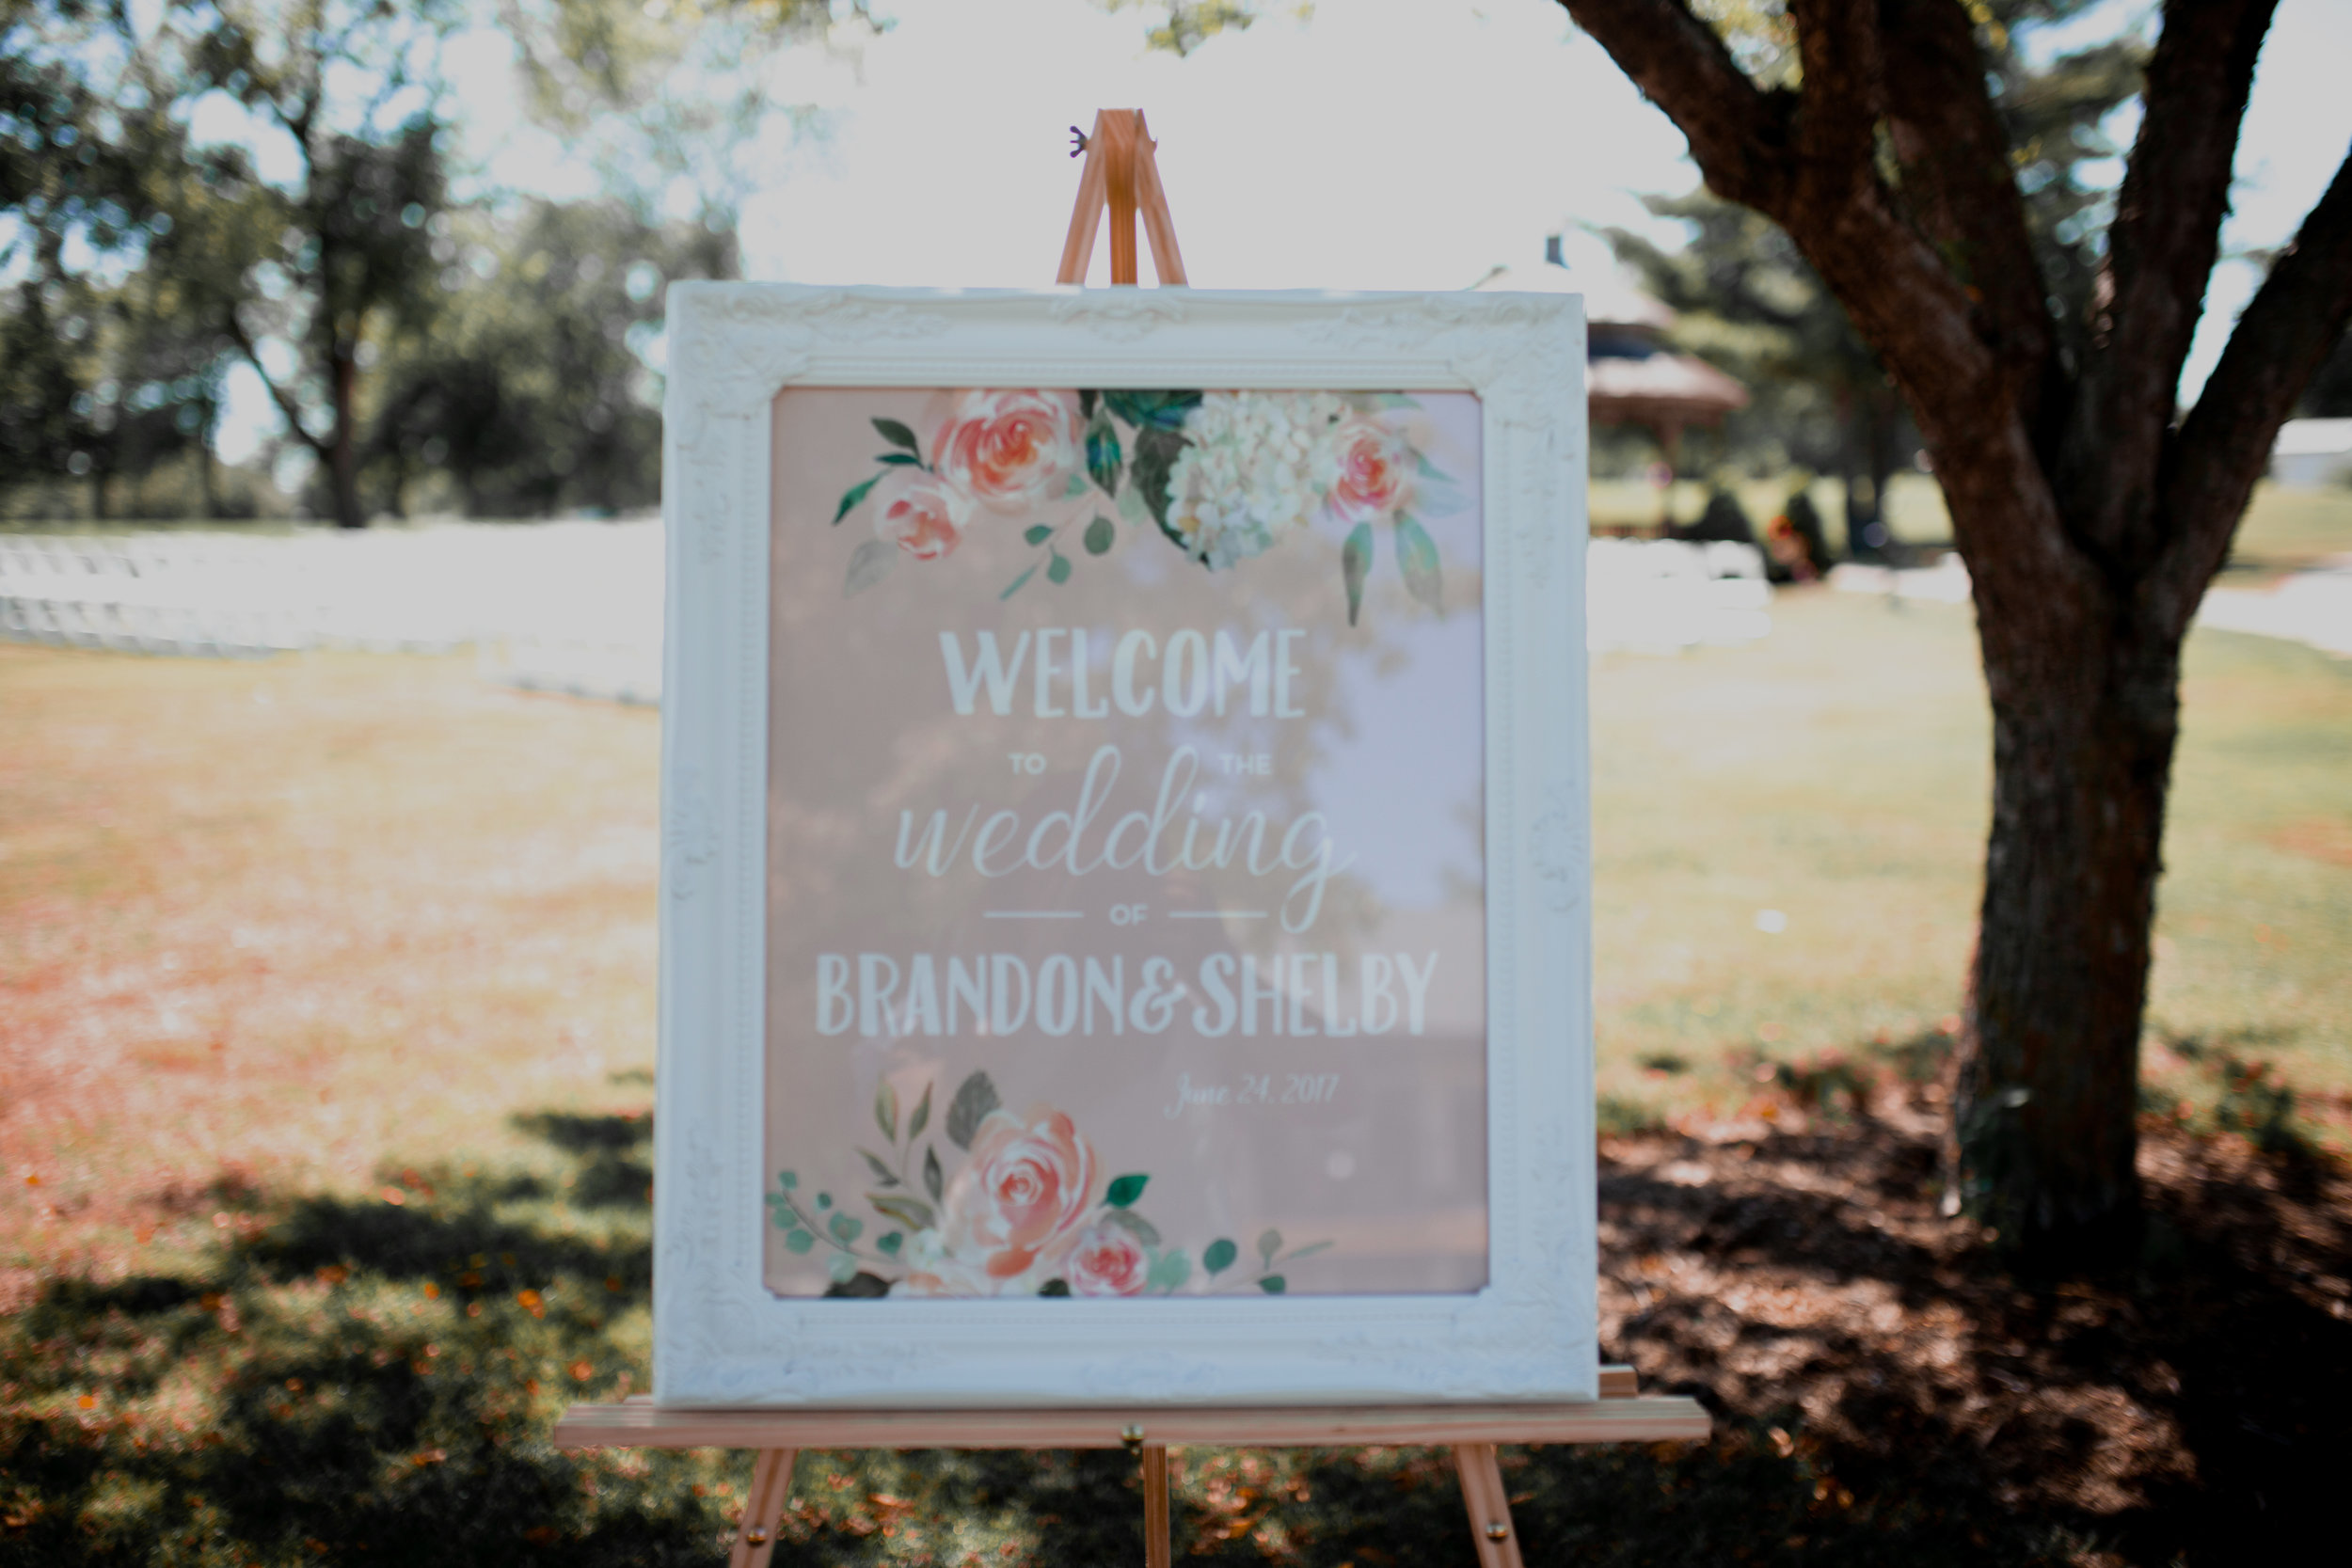 Shelby + Brandon - June 2017 — Shelby + Brandon had a sunny outdoor wedding full of glitzy, soft, and floral feels. I designed various signs for the wedding and reception based on Shelby's vision.